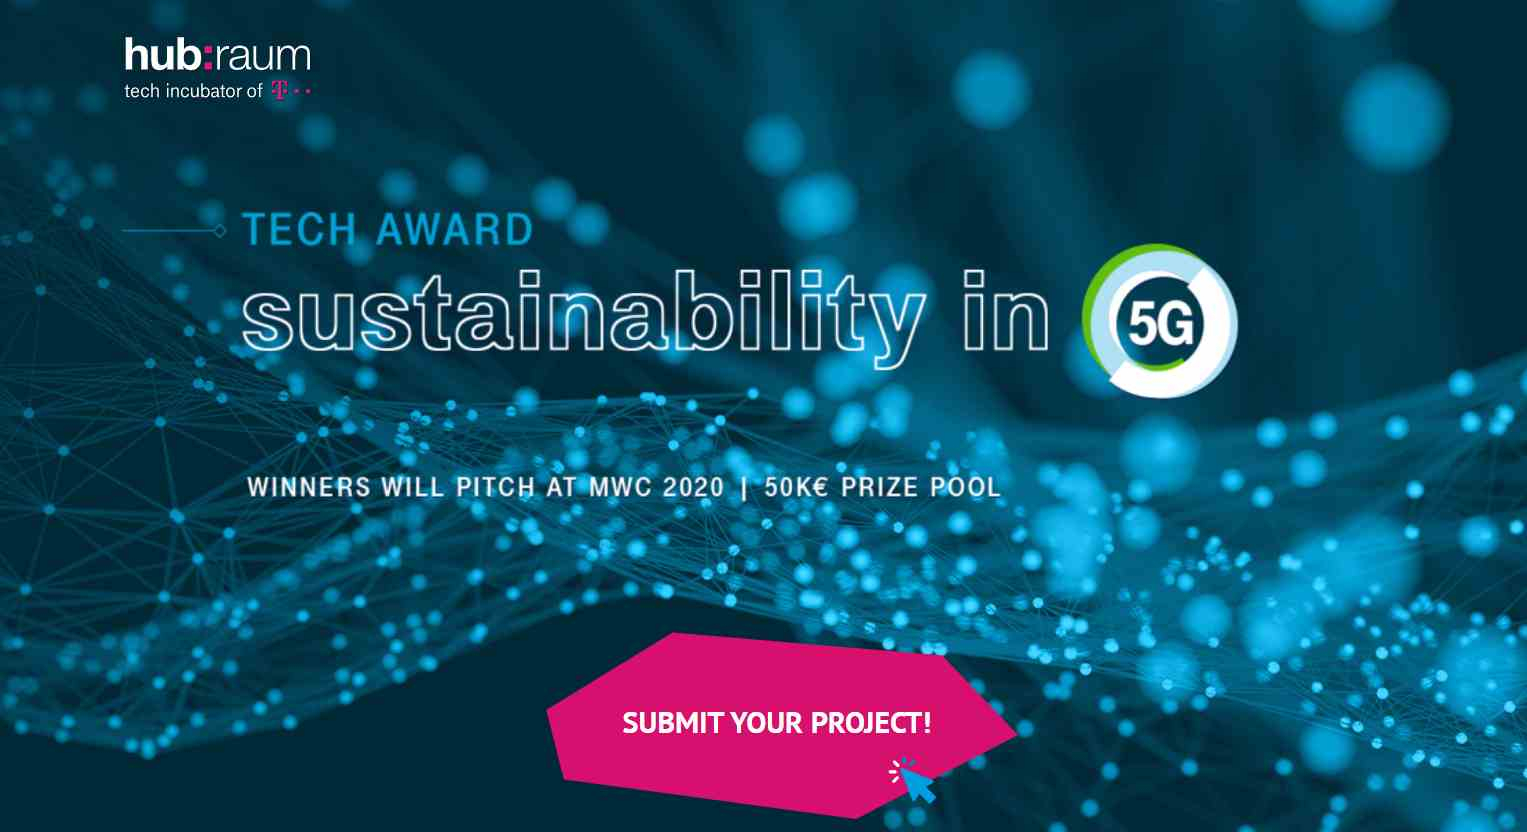 Deutsche Telekom Sustainability in the 5G Award At MWC 2020 Barcelona